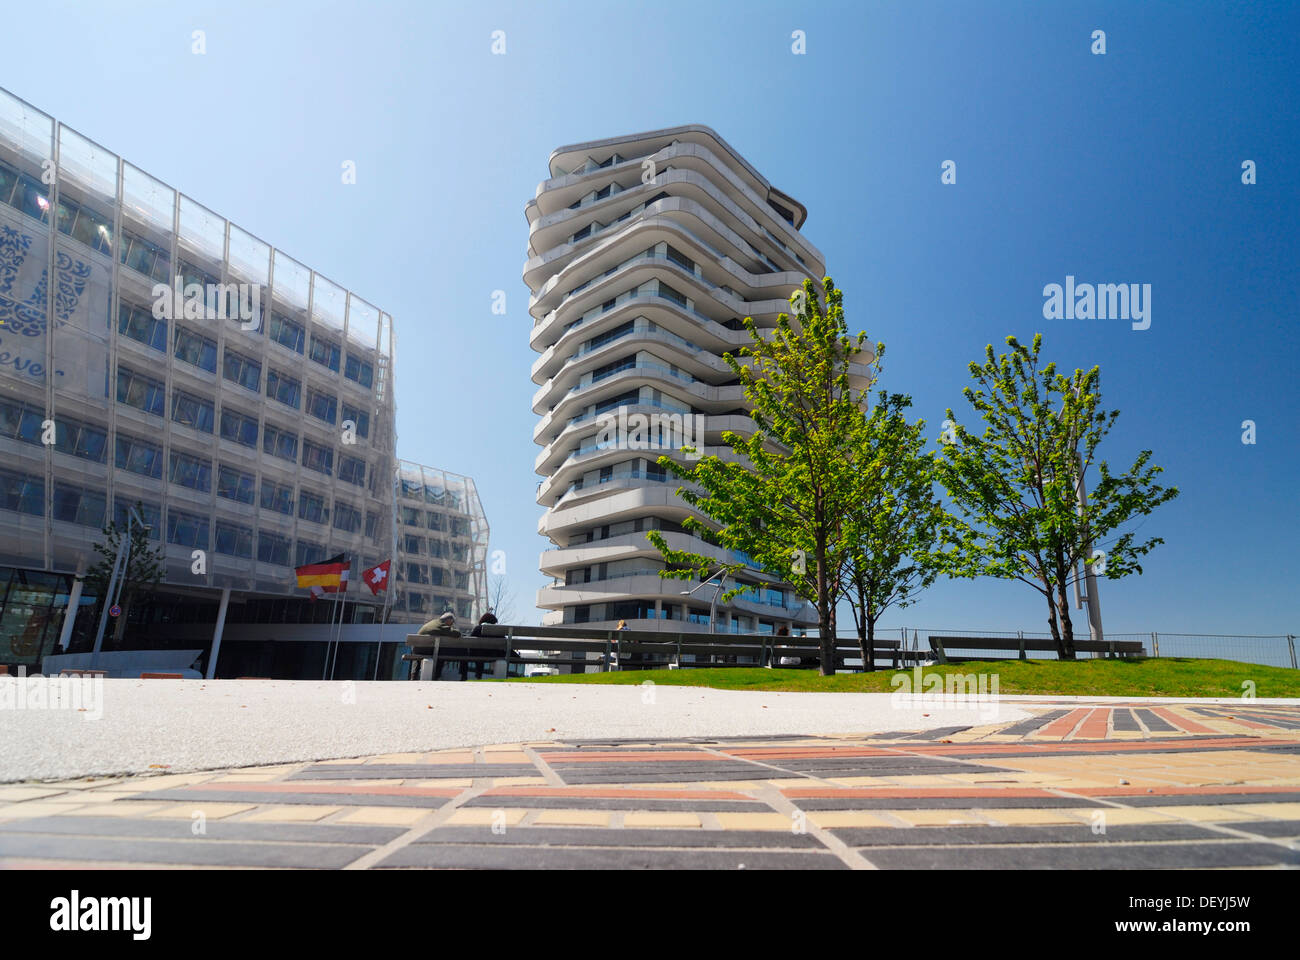 The apartment building Marco-Polo-Tower, Strandkai quay, Hafencity, Hamburg - Stock Image